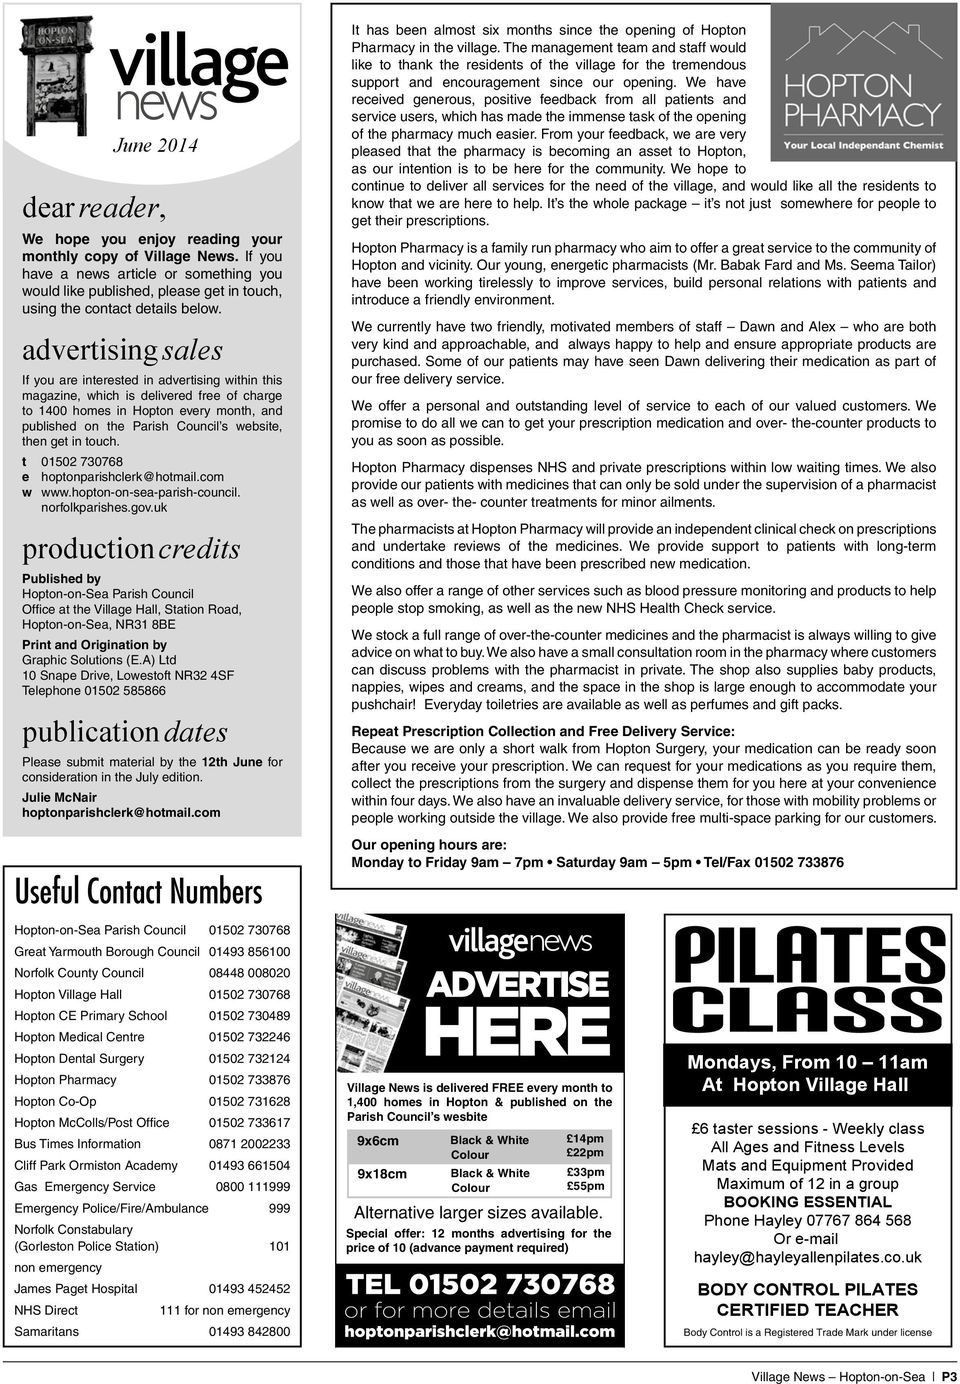 advertising sales If you are interested in advertising within this magazine, which is delivered free of charge to 1400 homes in Hopton every month, and published on the Parish Council s website, then